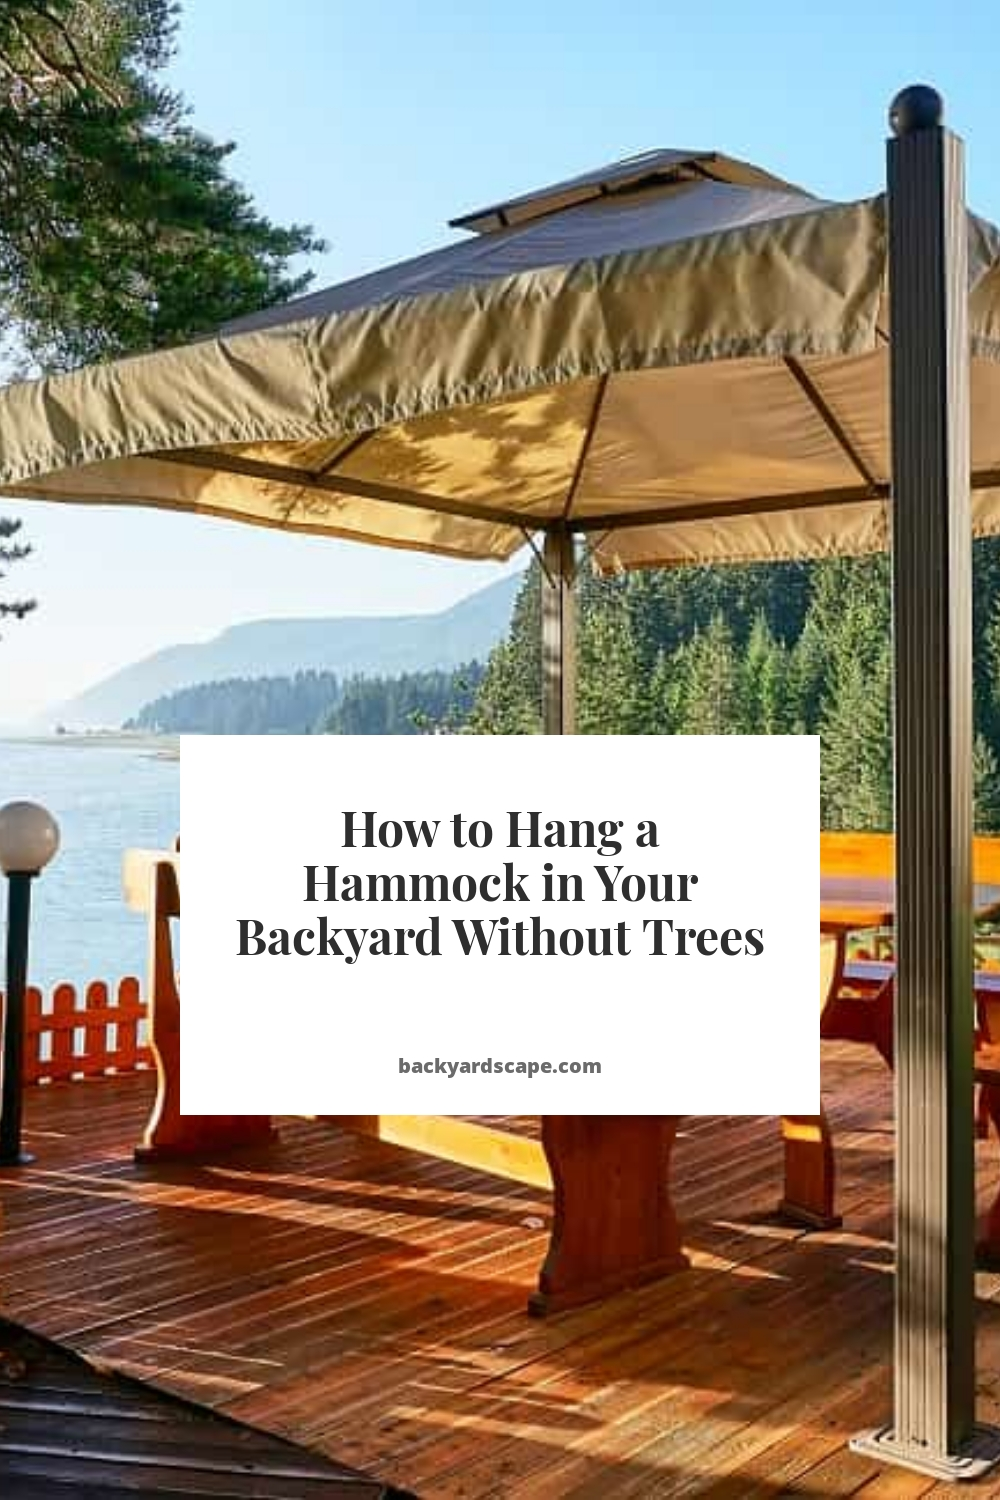 How to Hang a Hammock in Your Backyard Without Trees